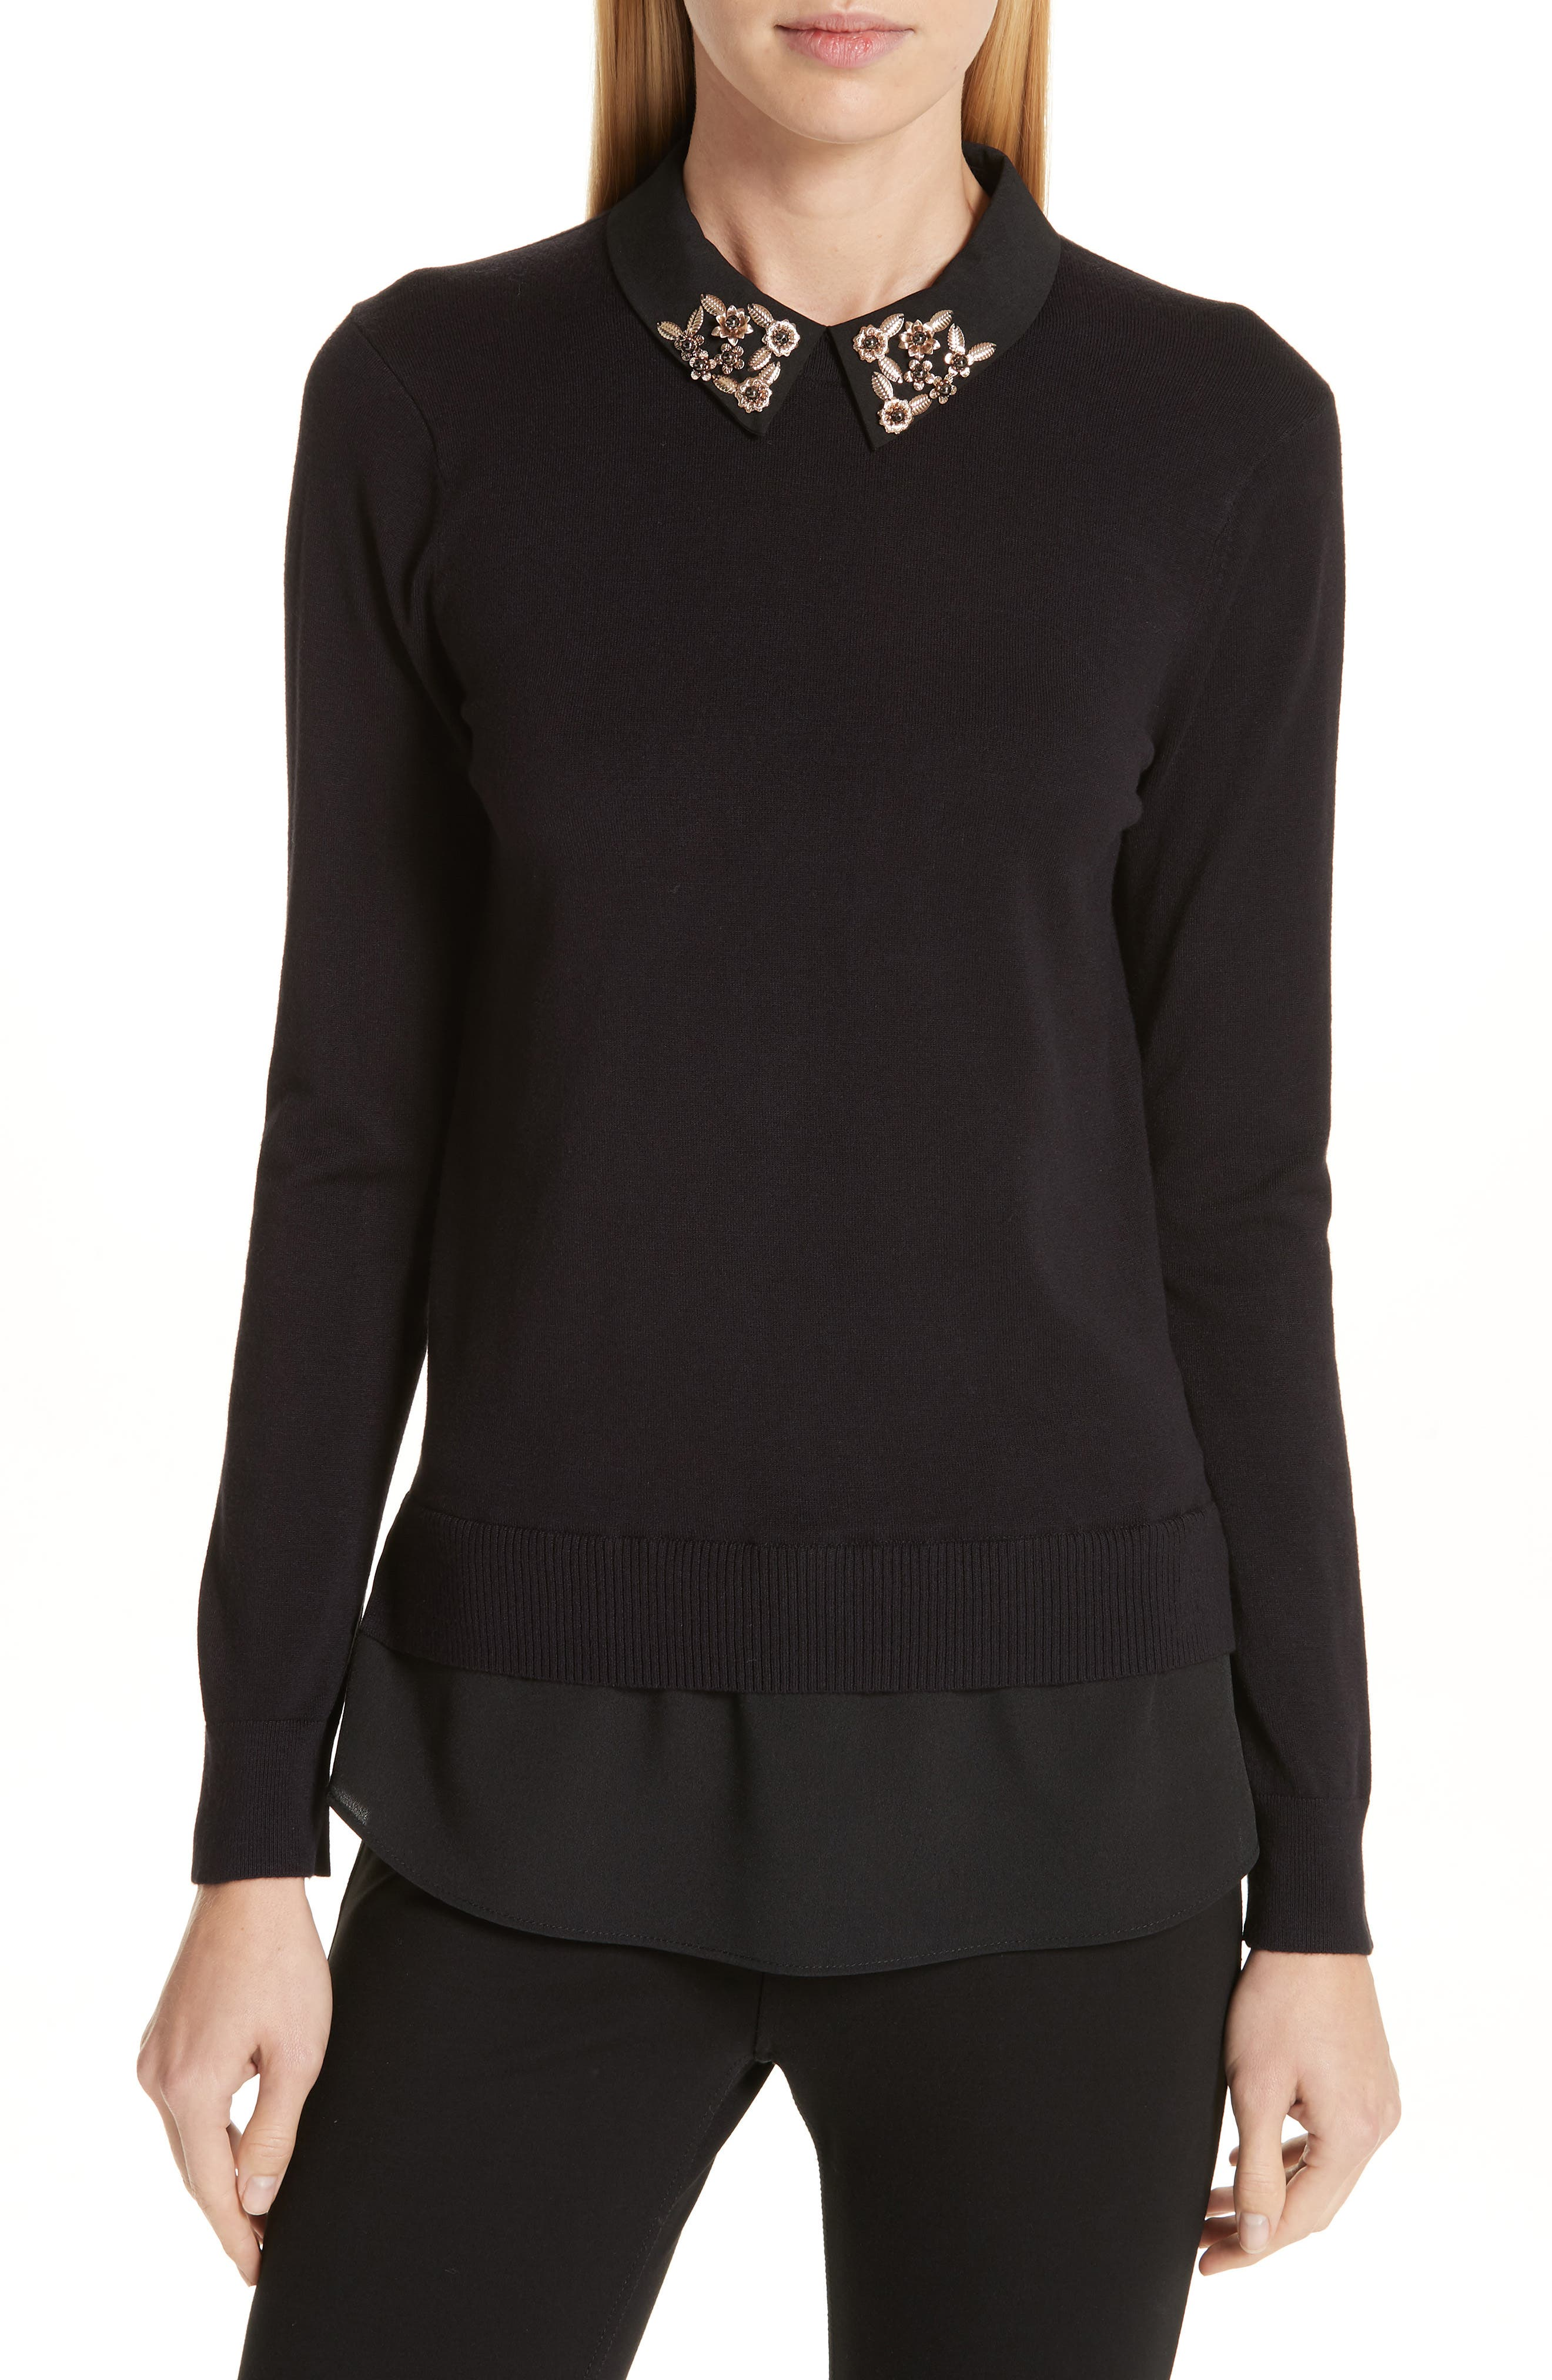 Moliiee Embroidered Collar Sweater,                             Main thumbnail 1, color,                             BLACK